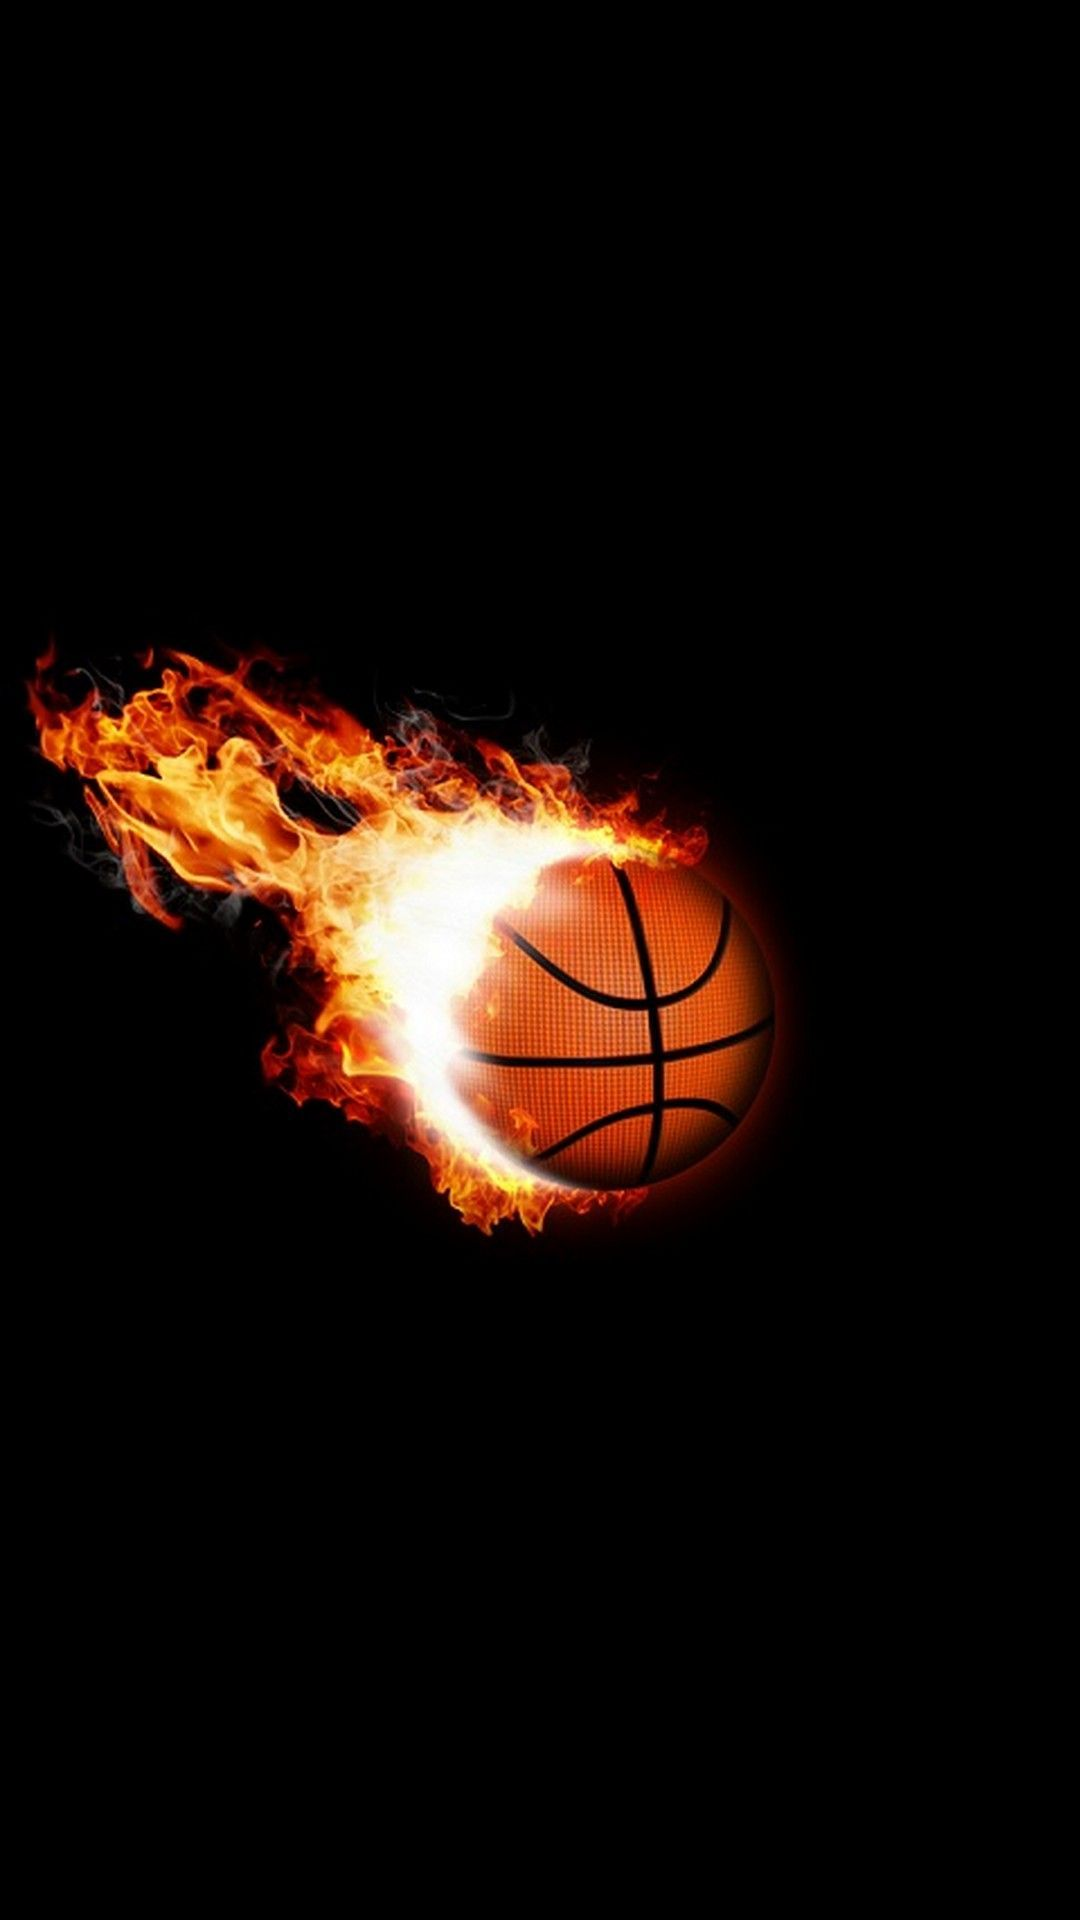 Cool Basketball Hd Wallpaper Android Cool basketball wallpapers 1080x1920